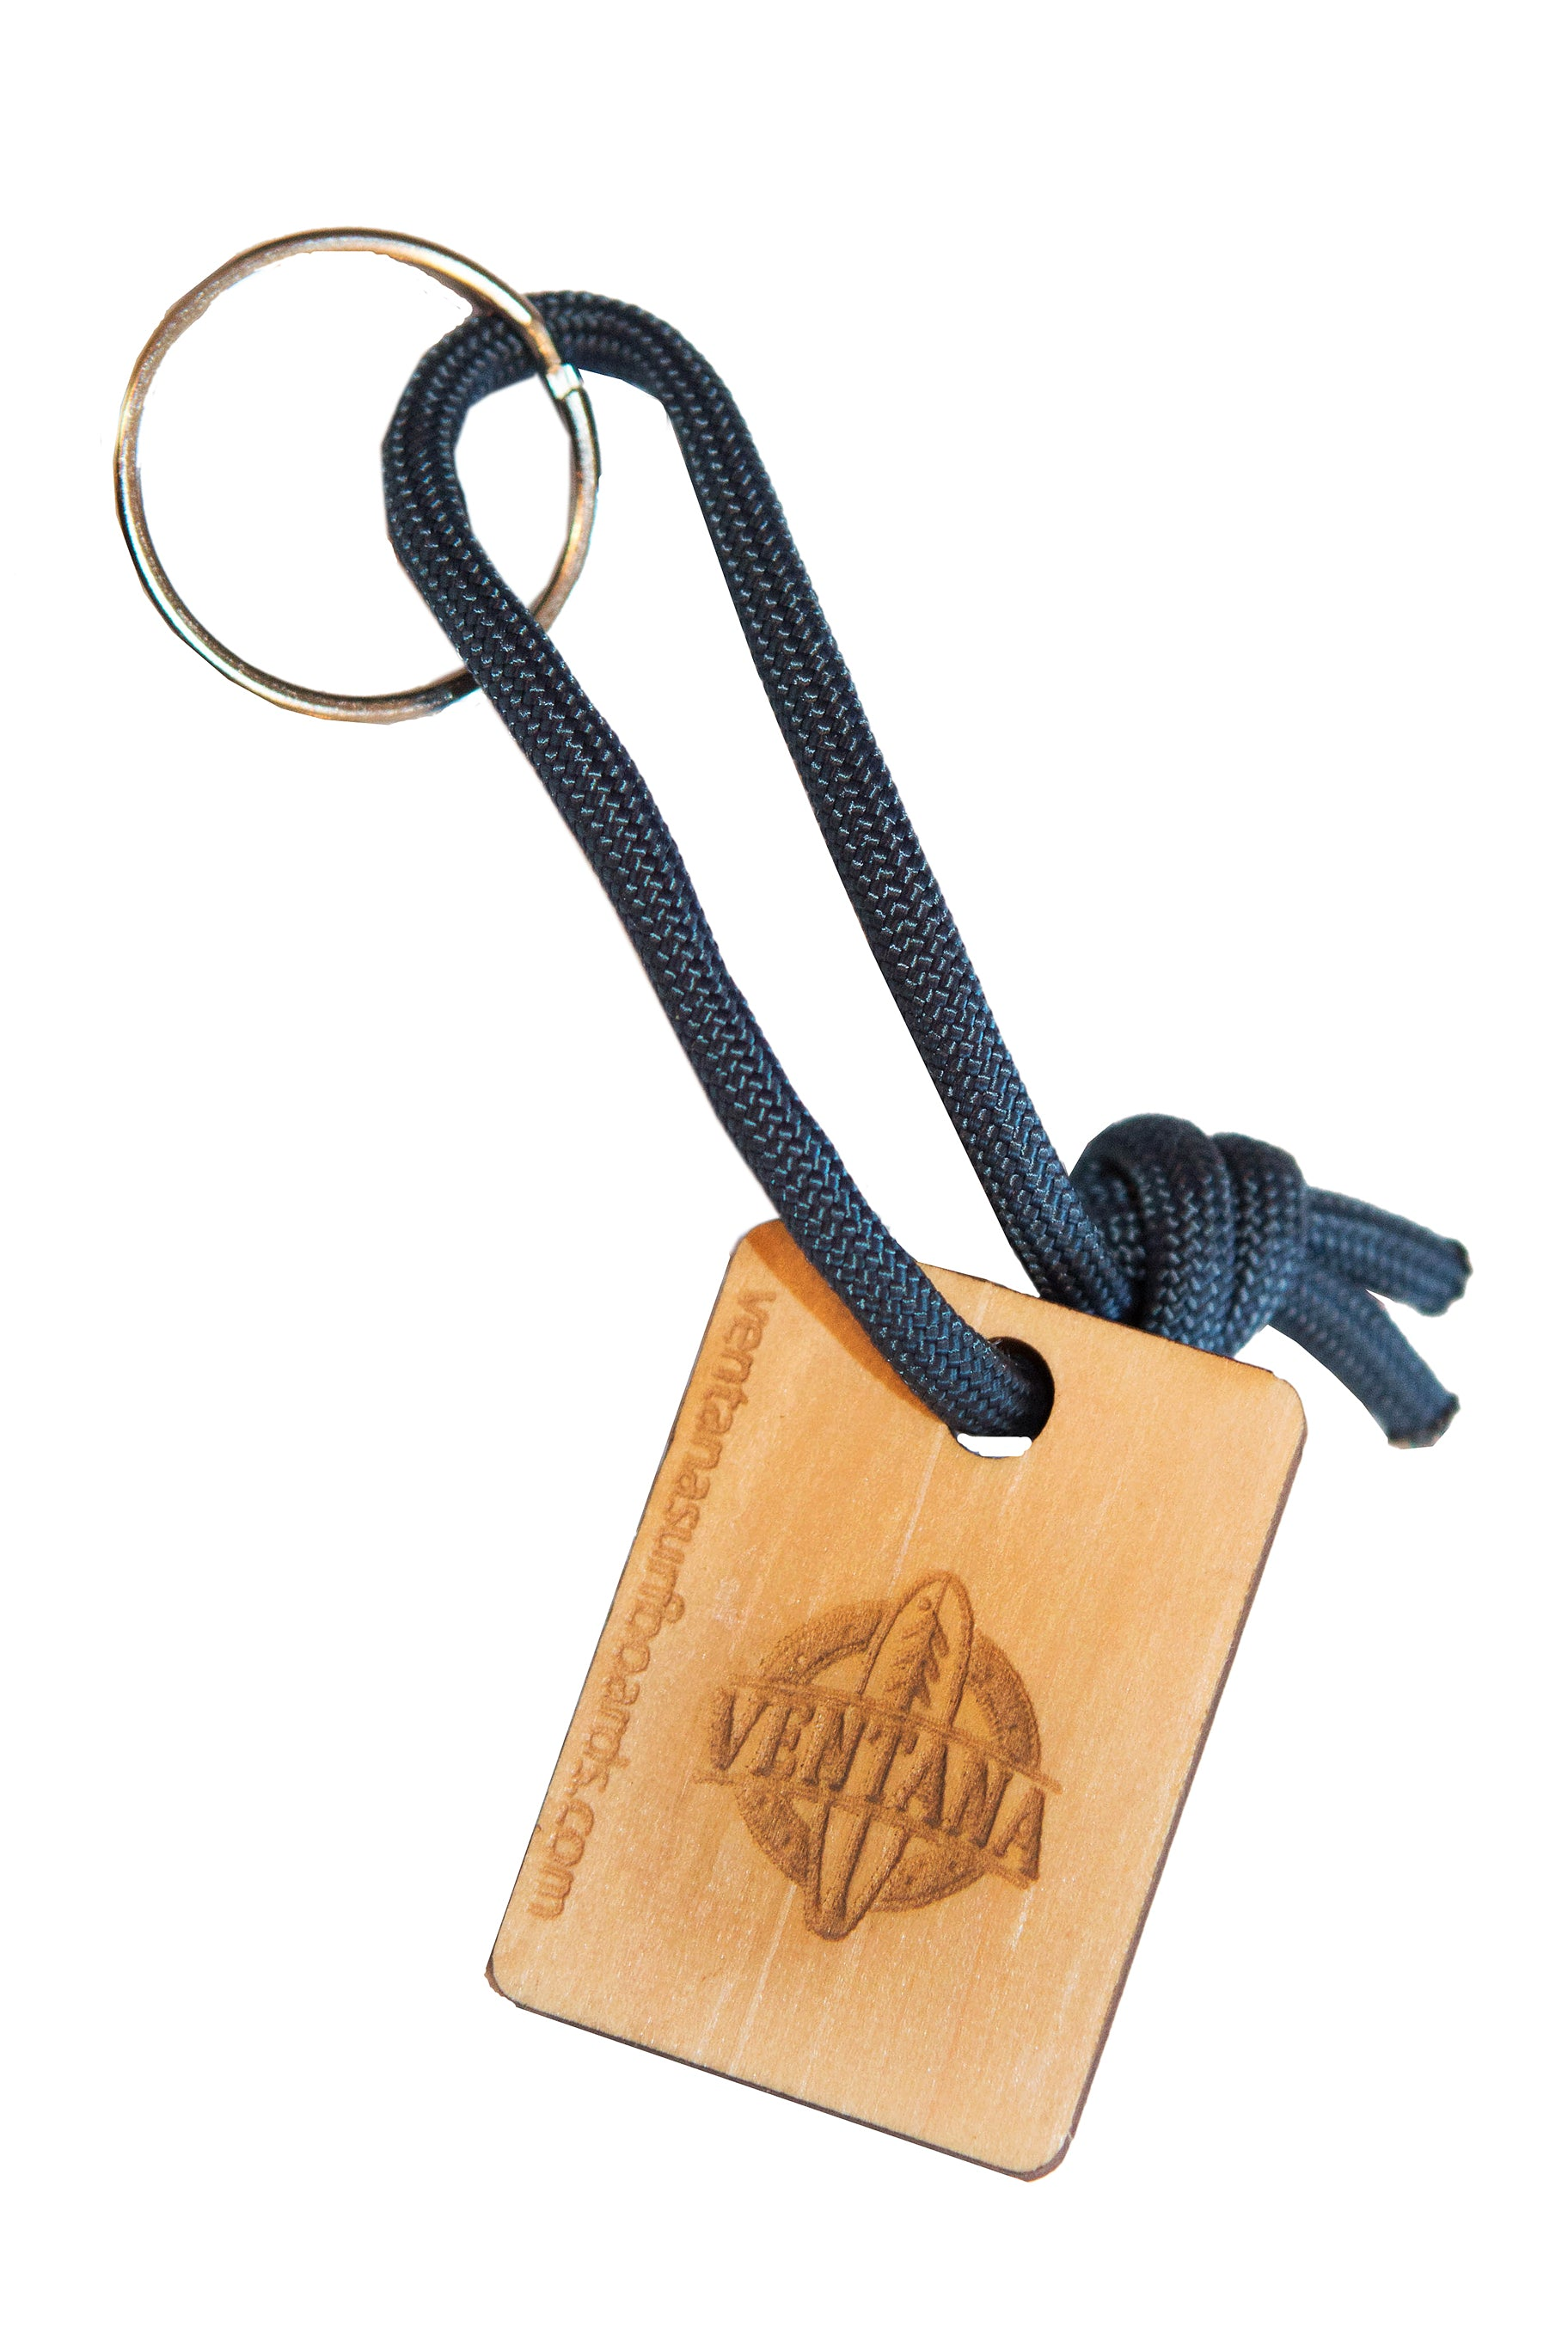 Ventana Wooden Leash Cord Key Ring